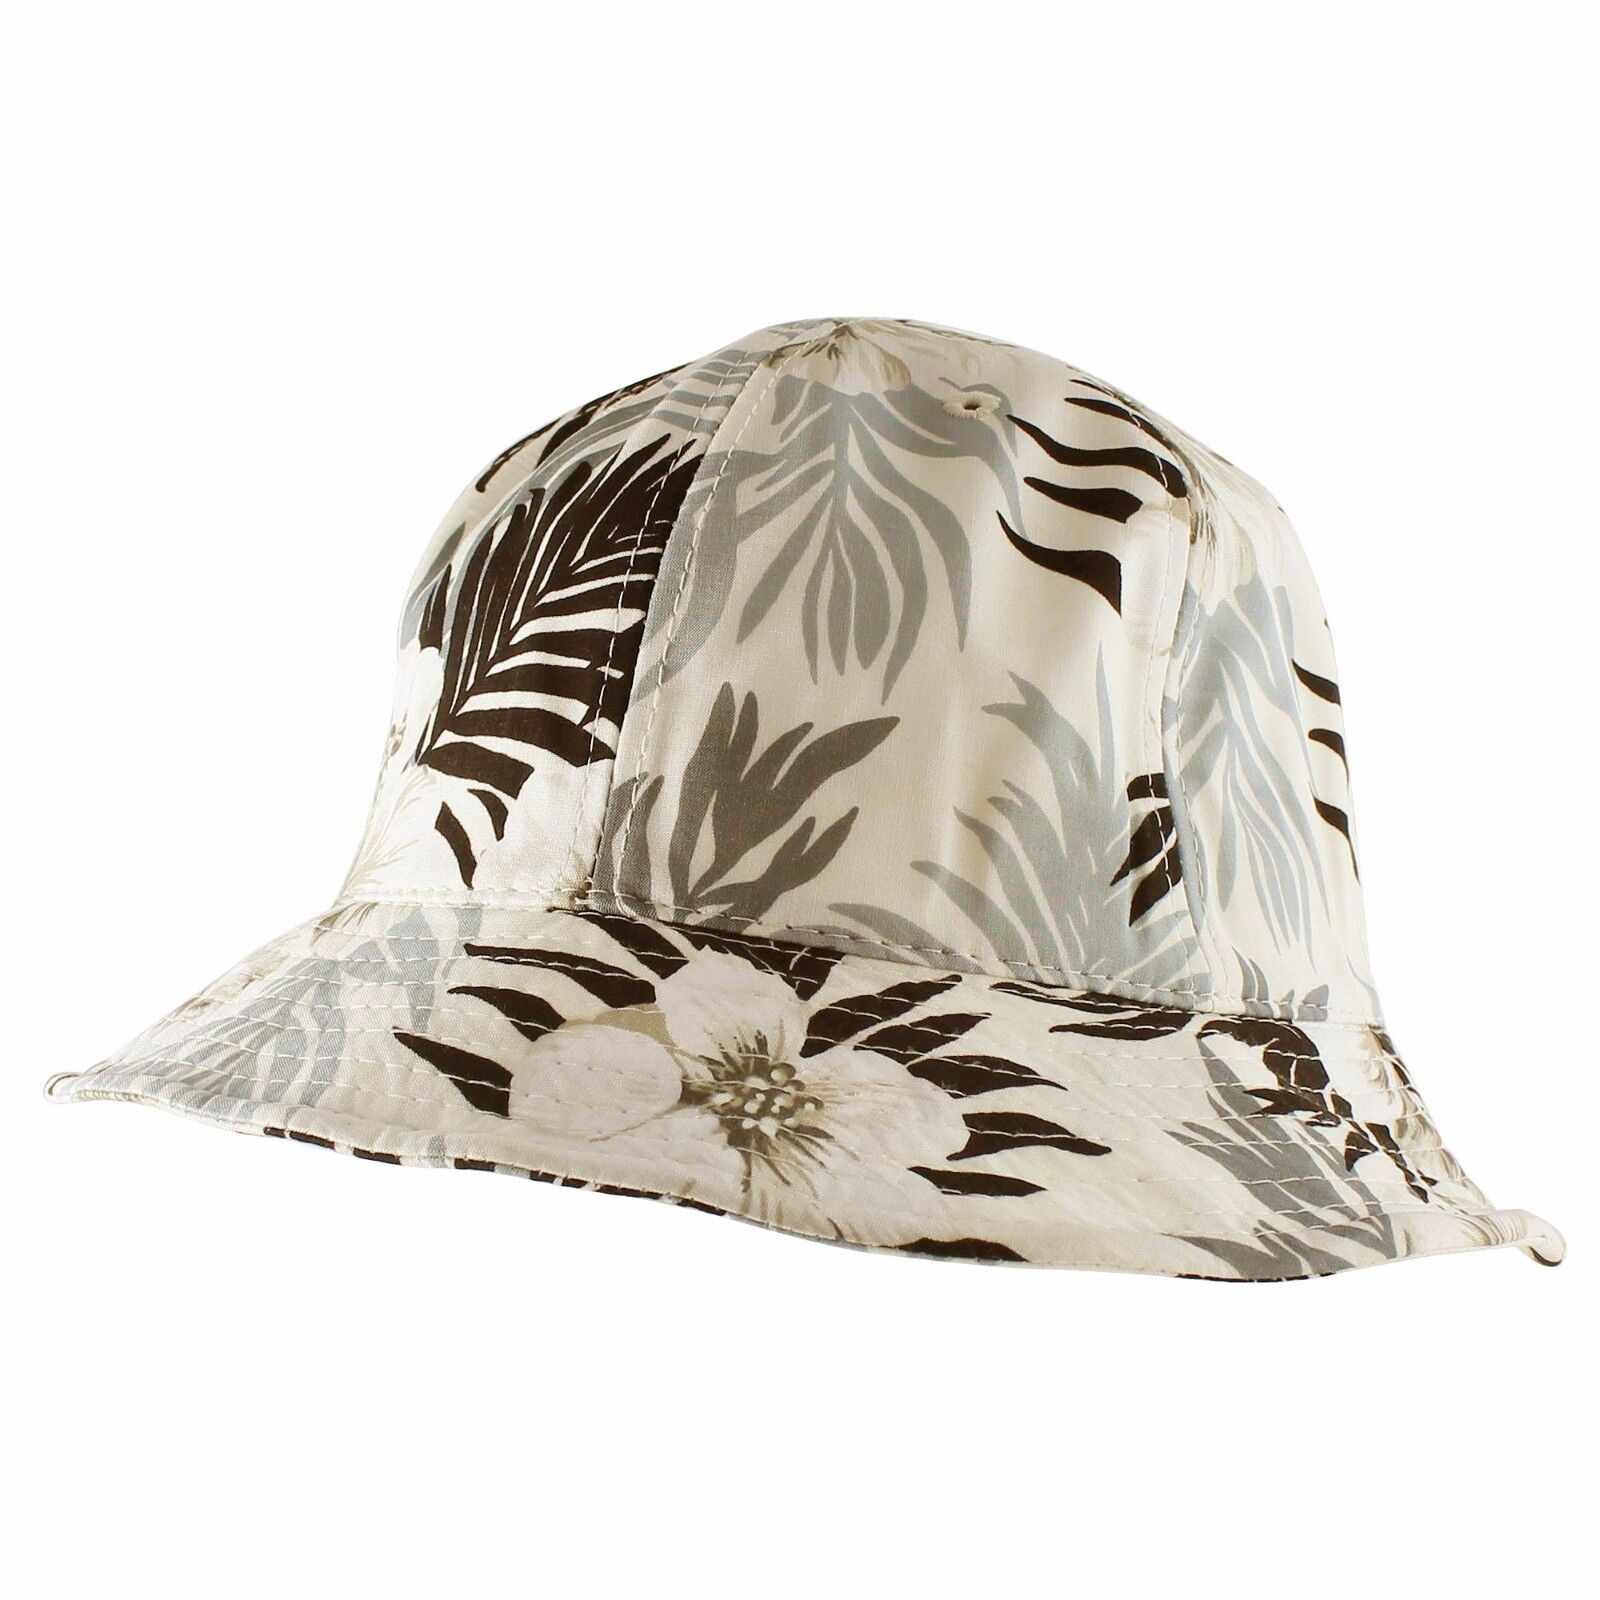 Tropical Hawaii Women Cotton Hiking Fishing Beach Sun Bucket Hat Women Hawaii Men Year Round fd641c